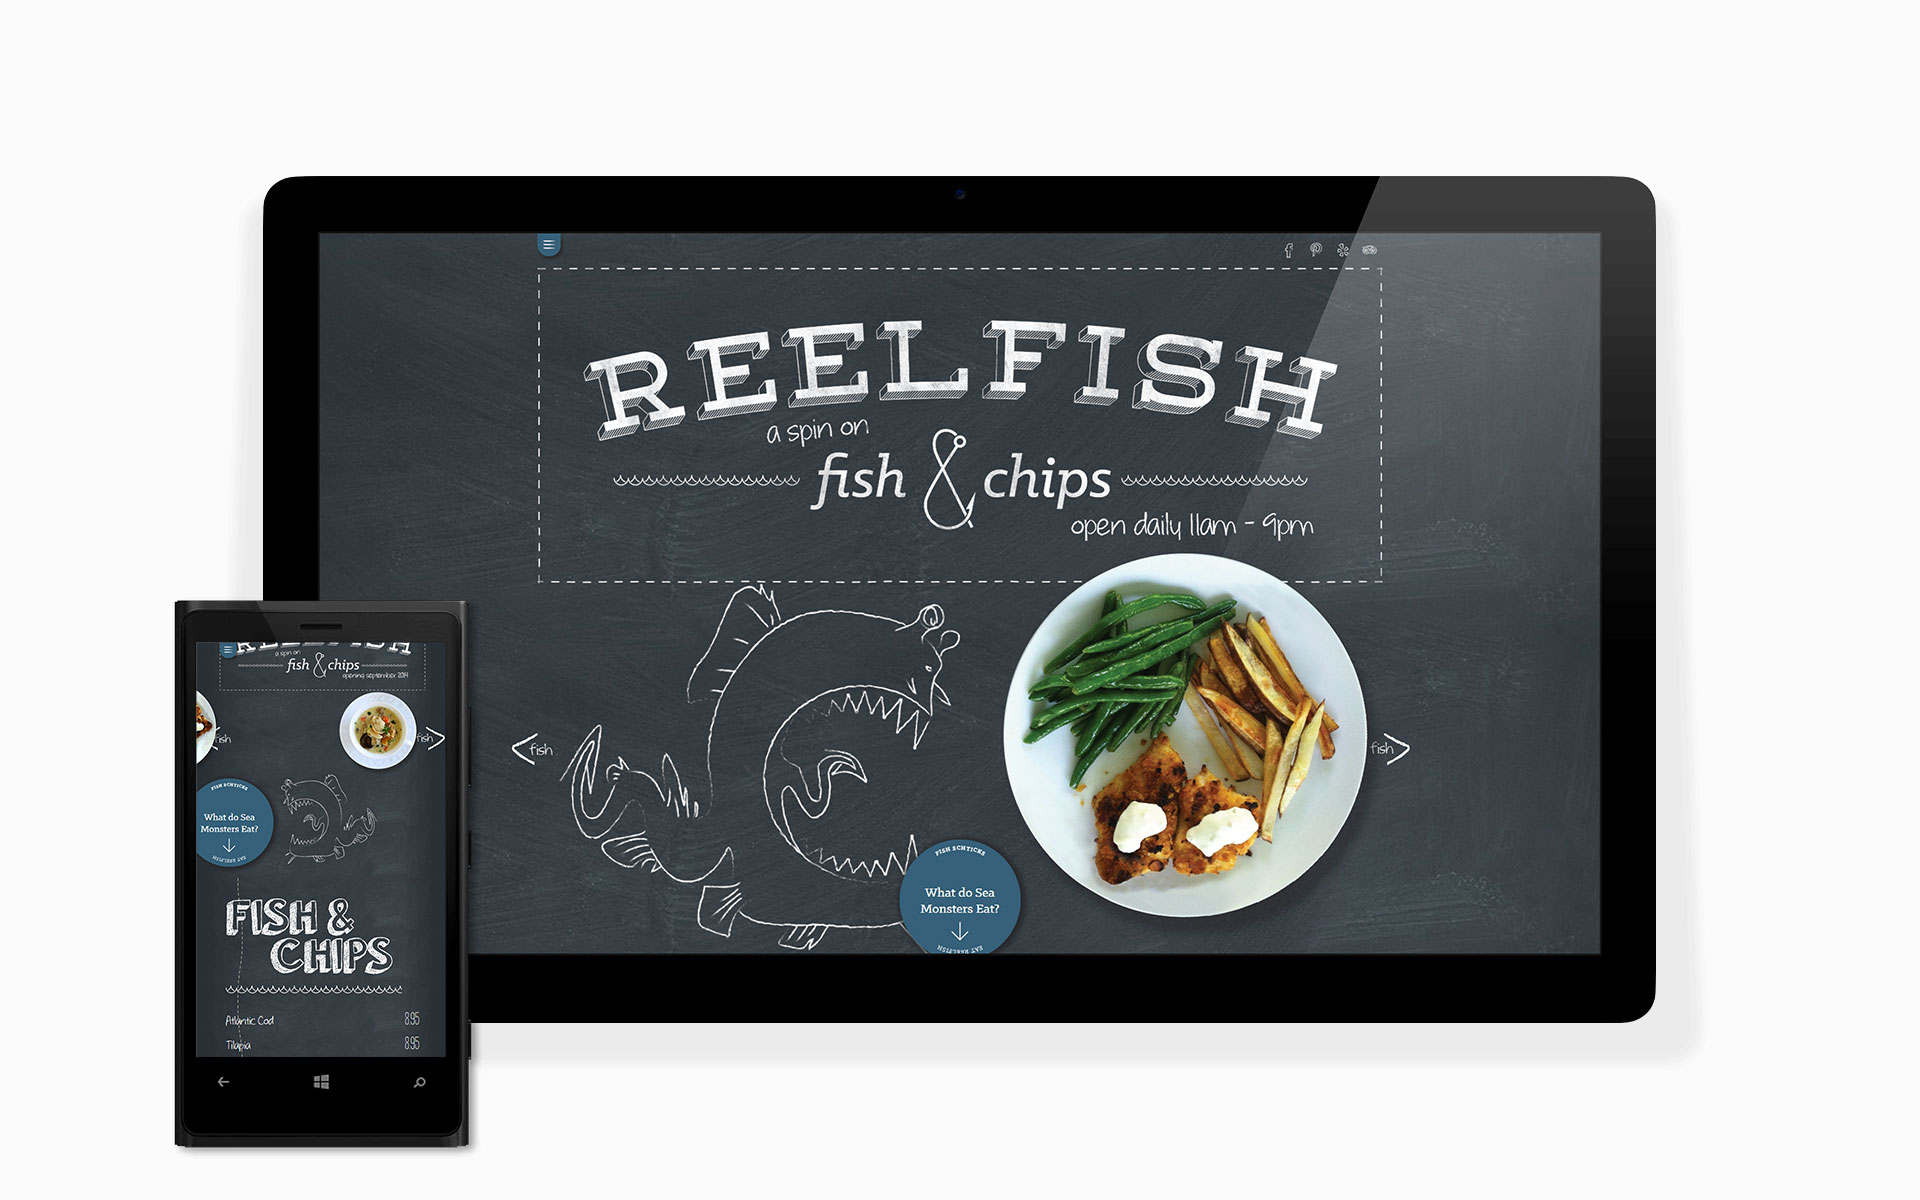 reelfish site